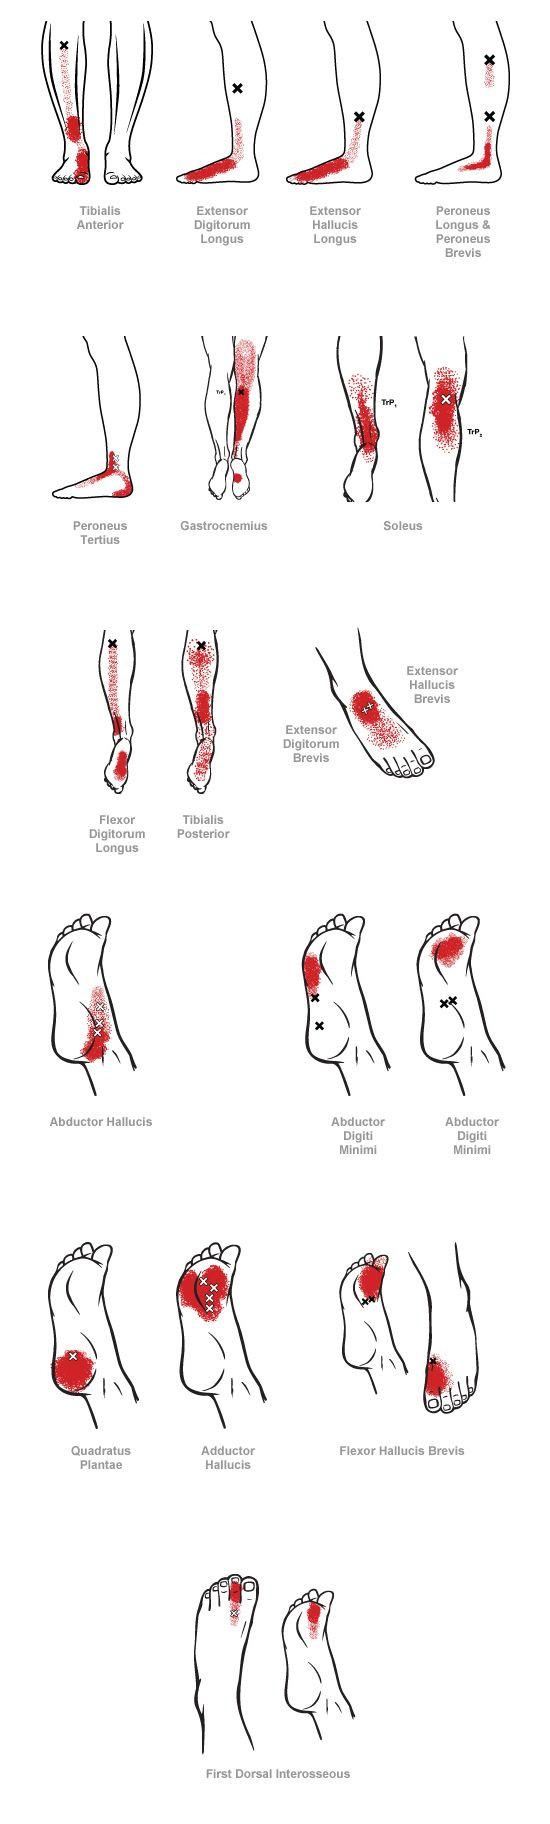 trigger point referral pain patterns for the ankle & foot